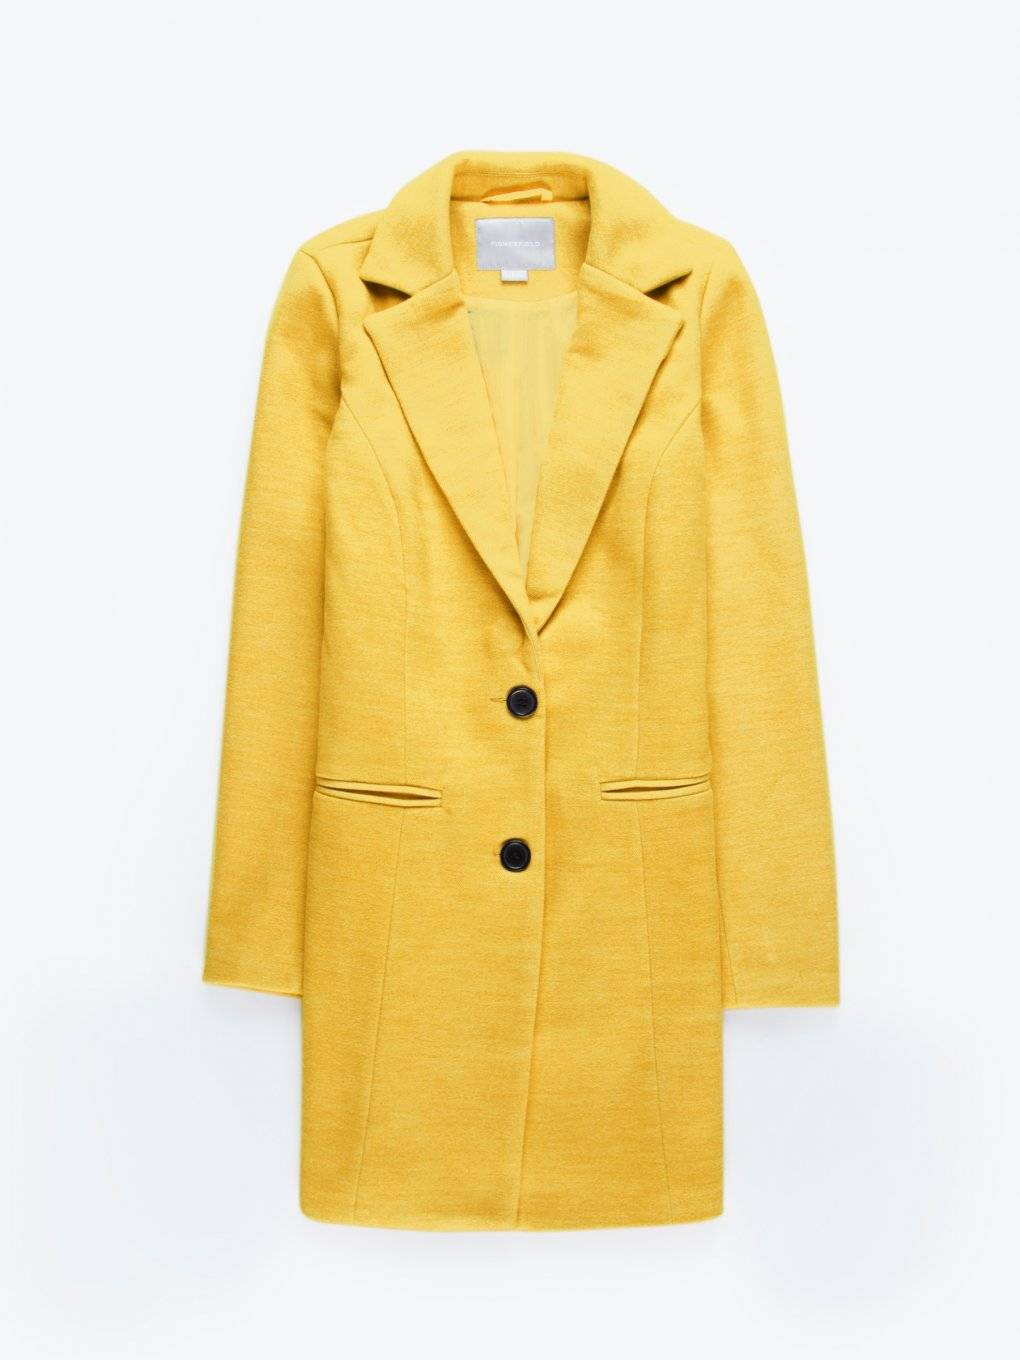 Basic blazer coat